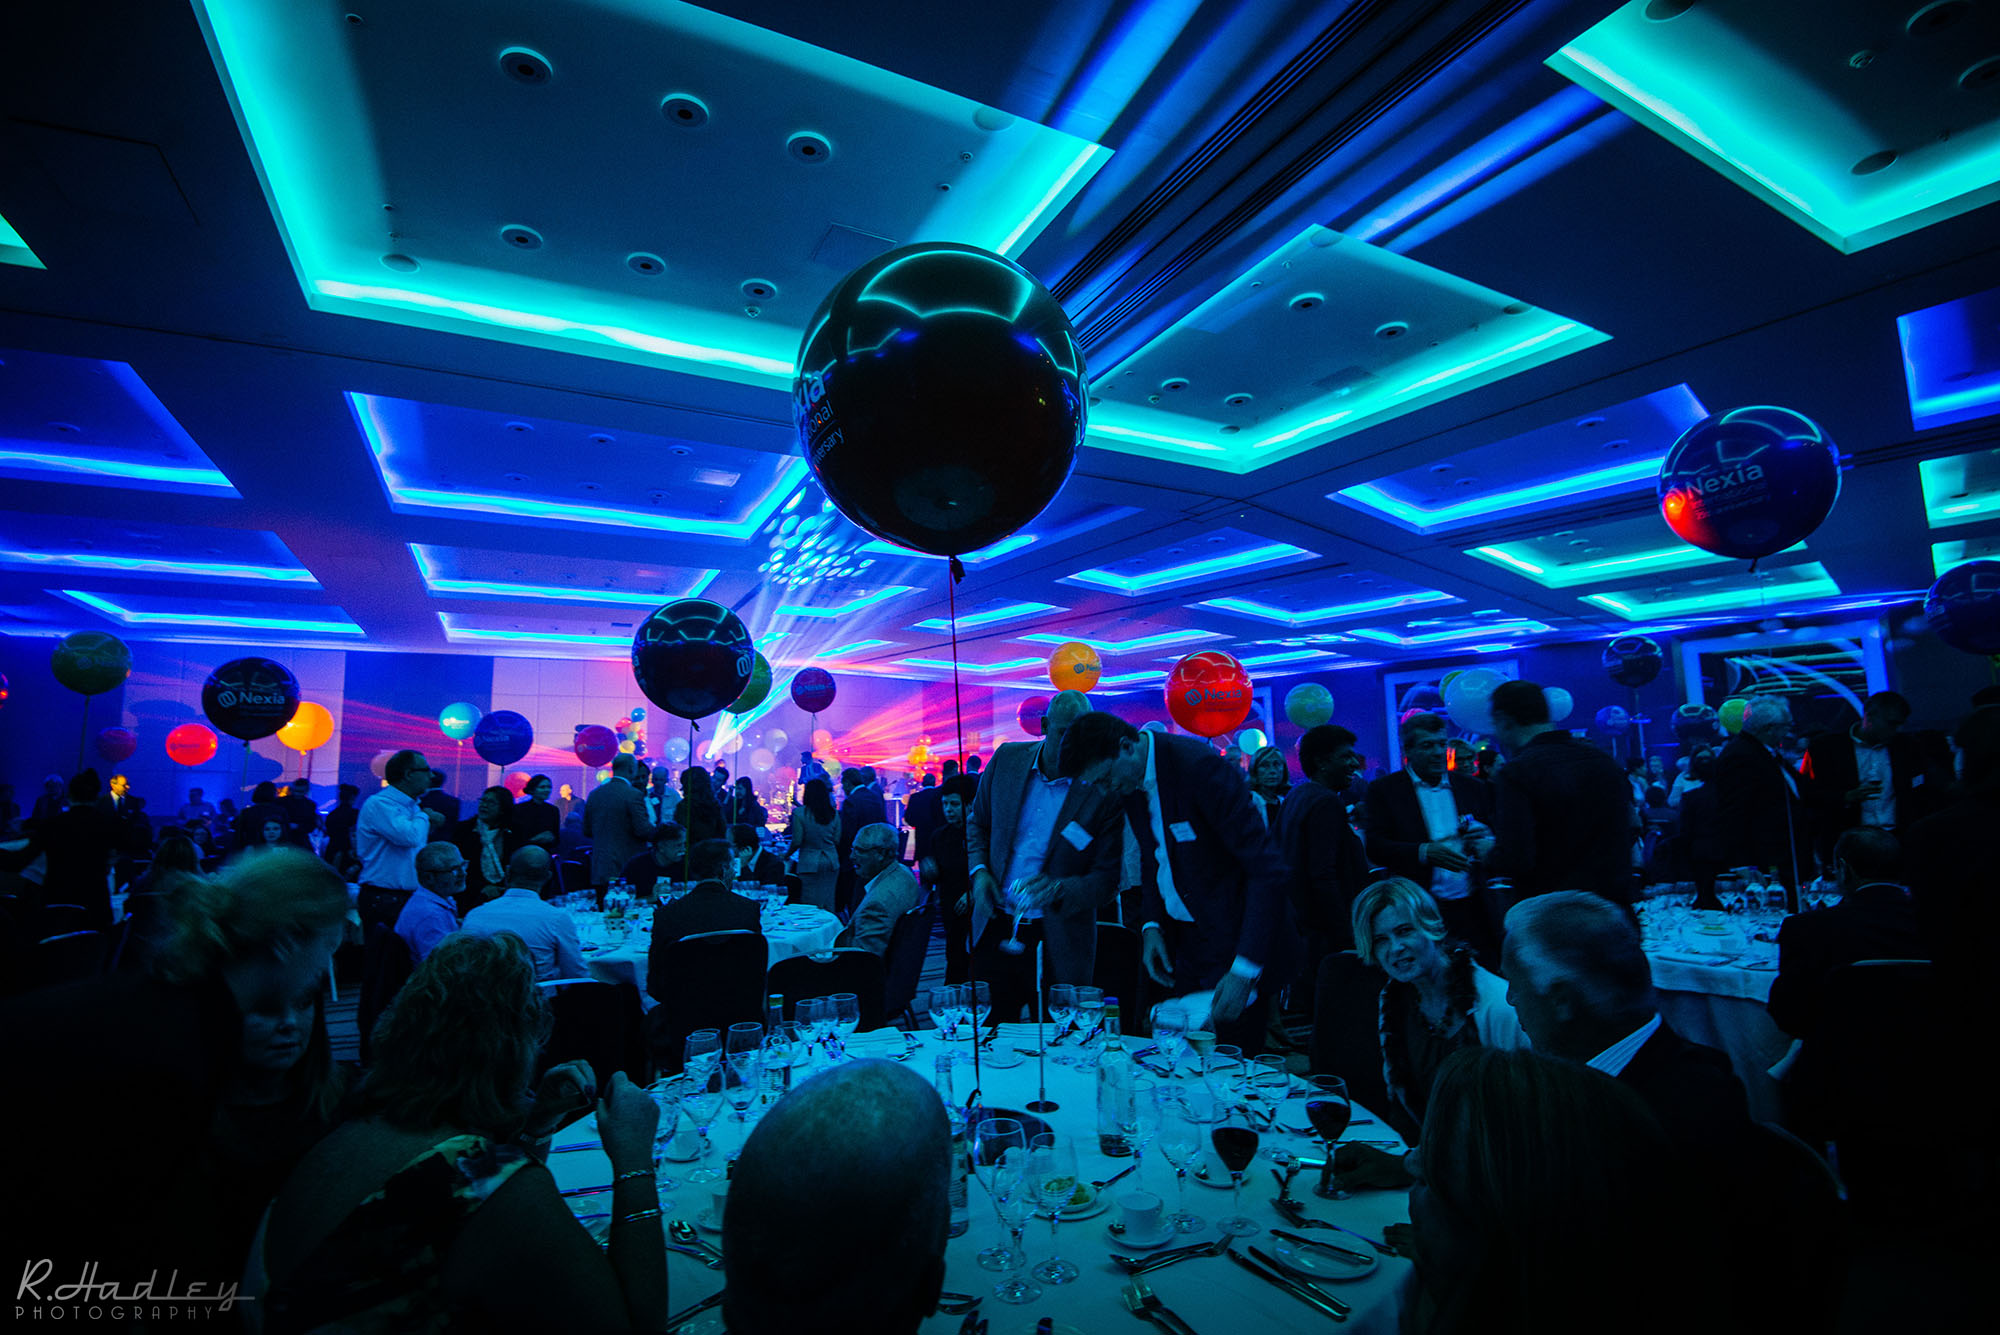 Corporate Event Photographer in London